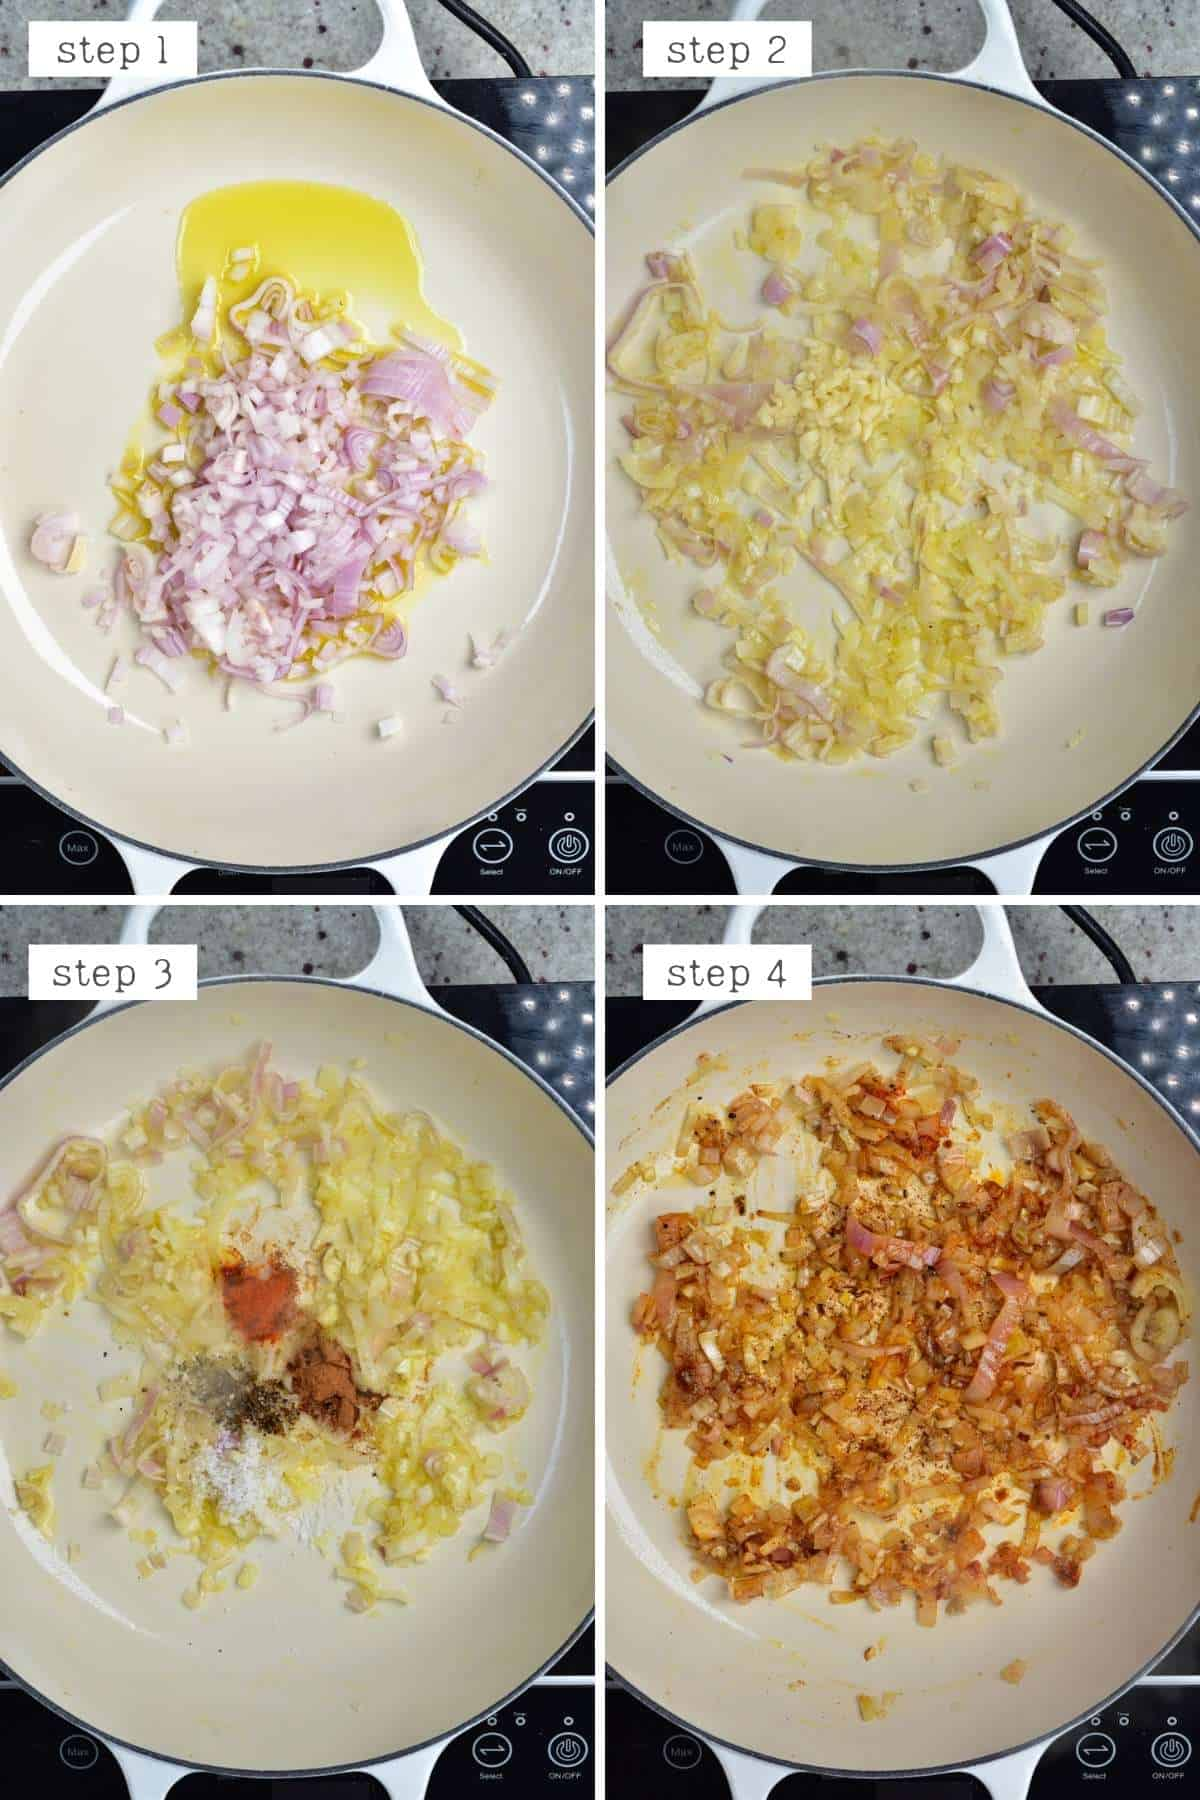 Steps for cooking onion and garlic with spices